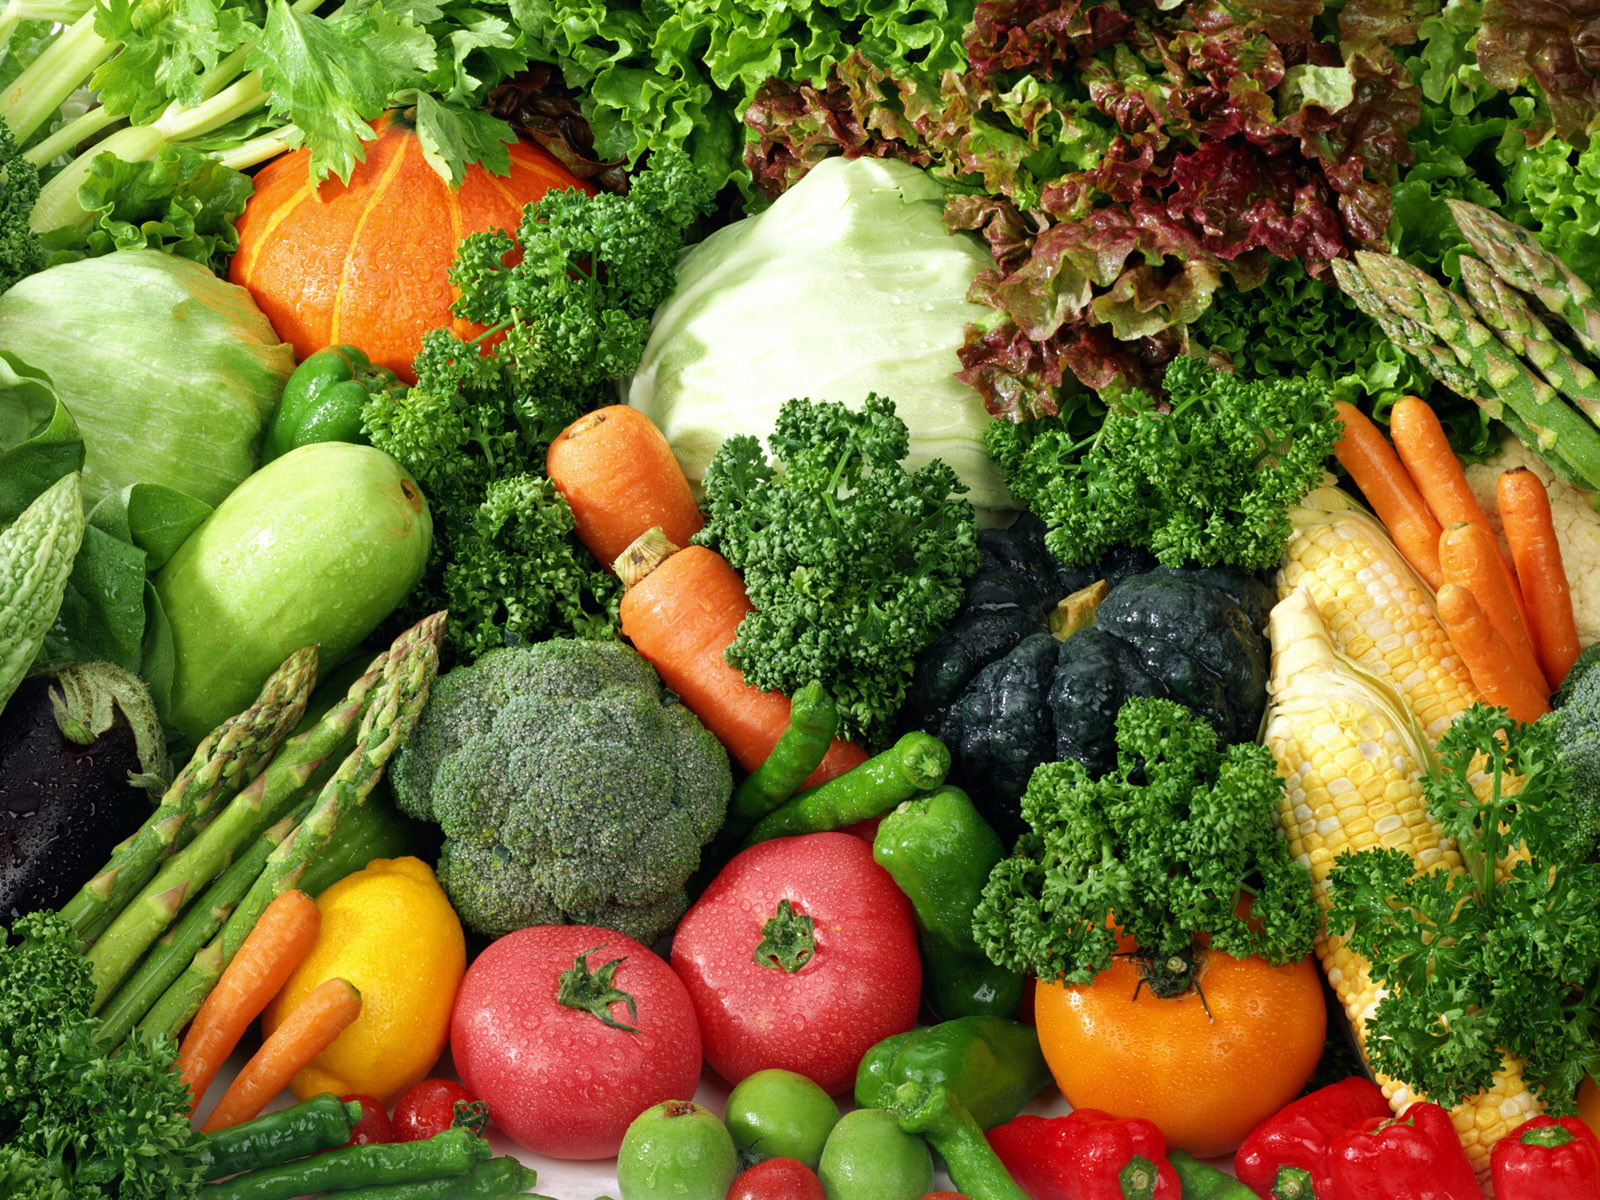 HD Wallpapers Vegetables 1600x1200